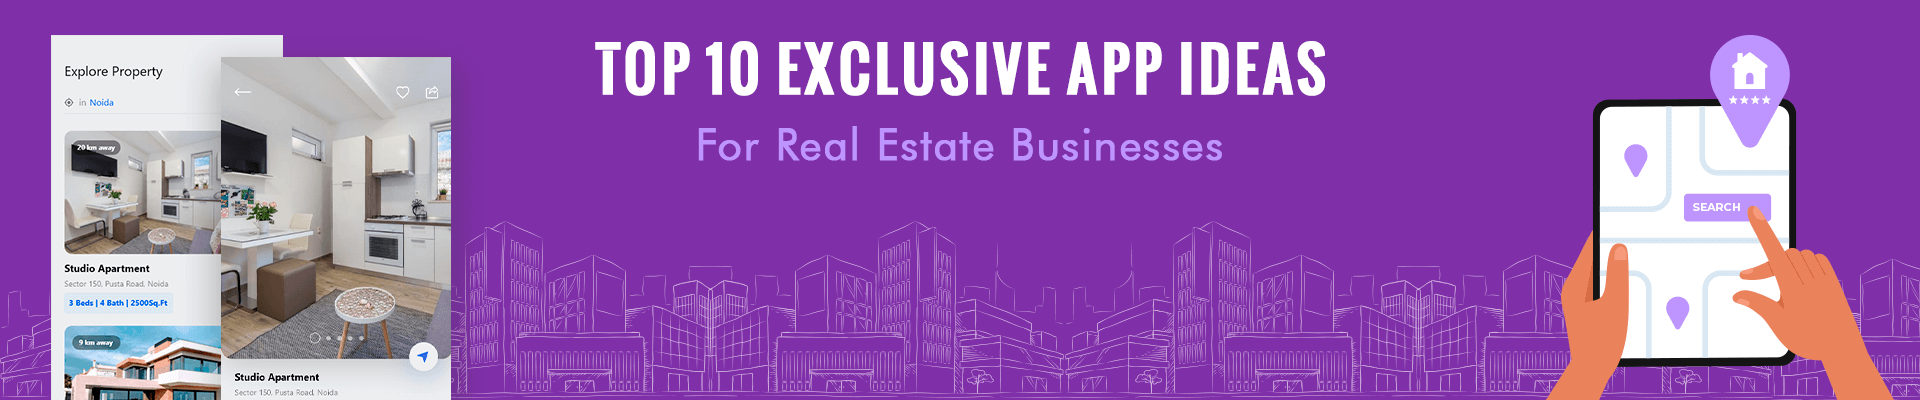 Top 10 Exclusive App Ideas for Real Estate Business